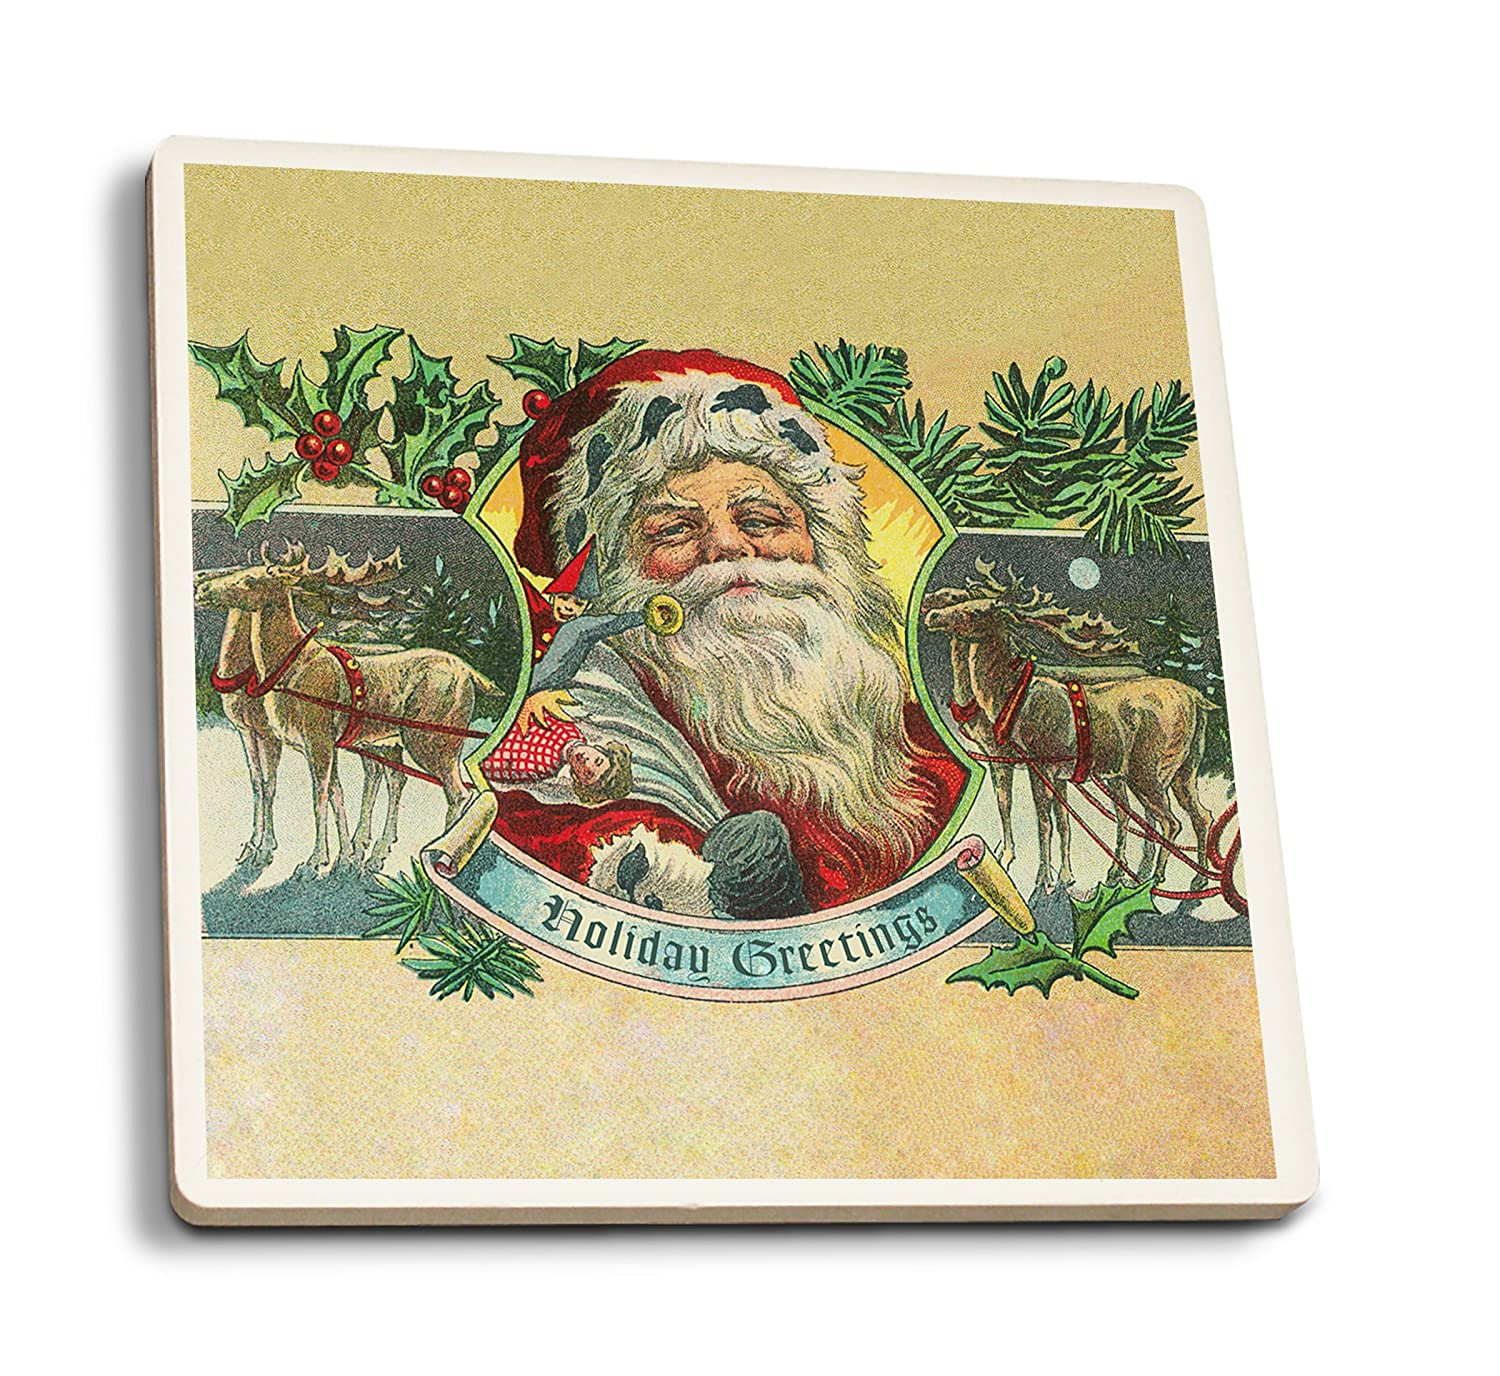 Holiday Greetings – サンタとトナカイ – ヴィンテージはがき 4 Coaster Set LANT-77975-CT B01N3YCQPI  4 Coaster Set